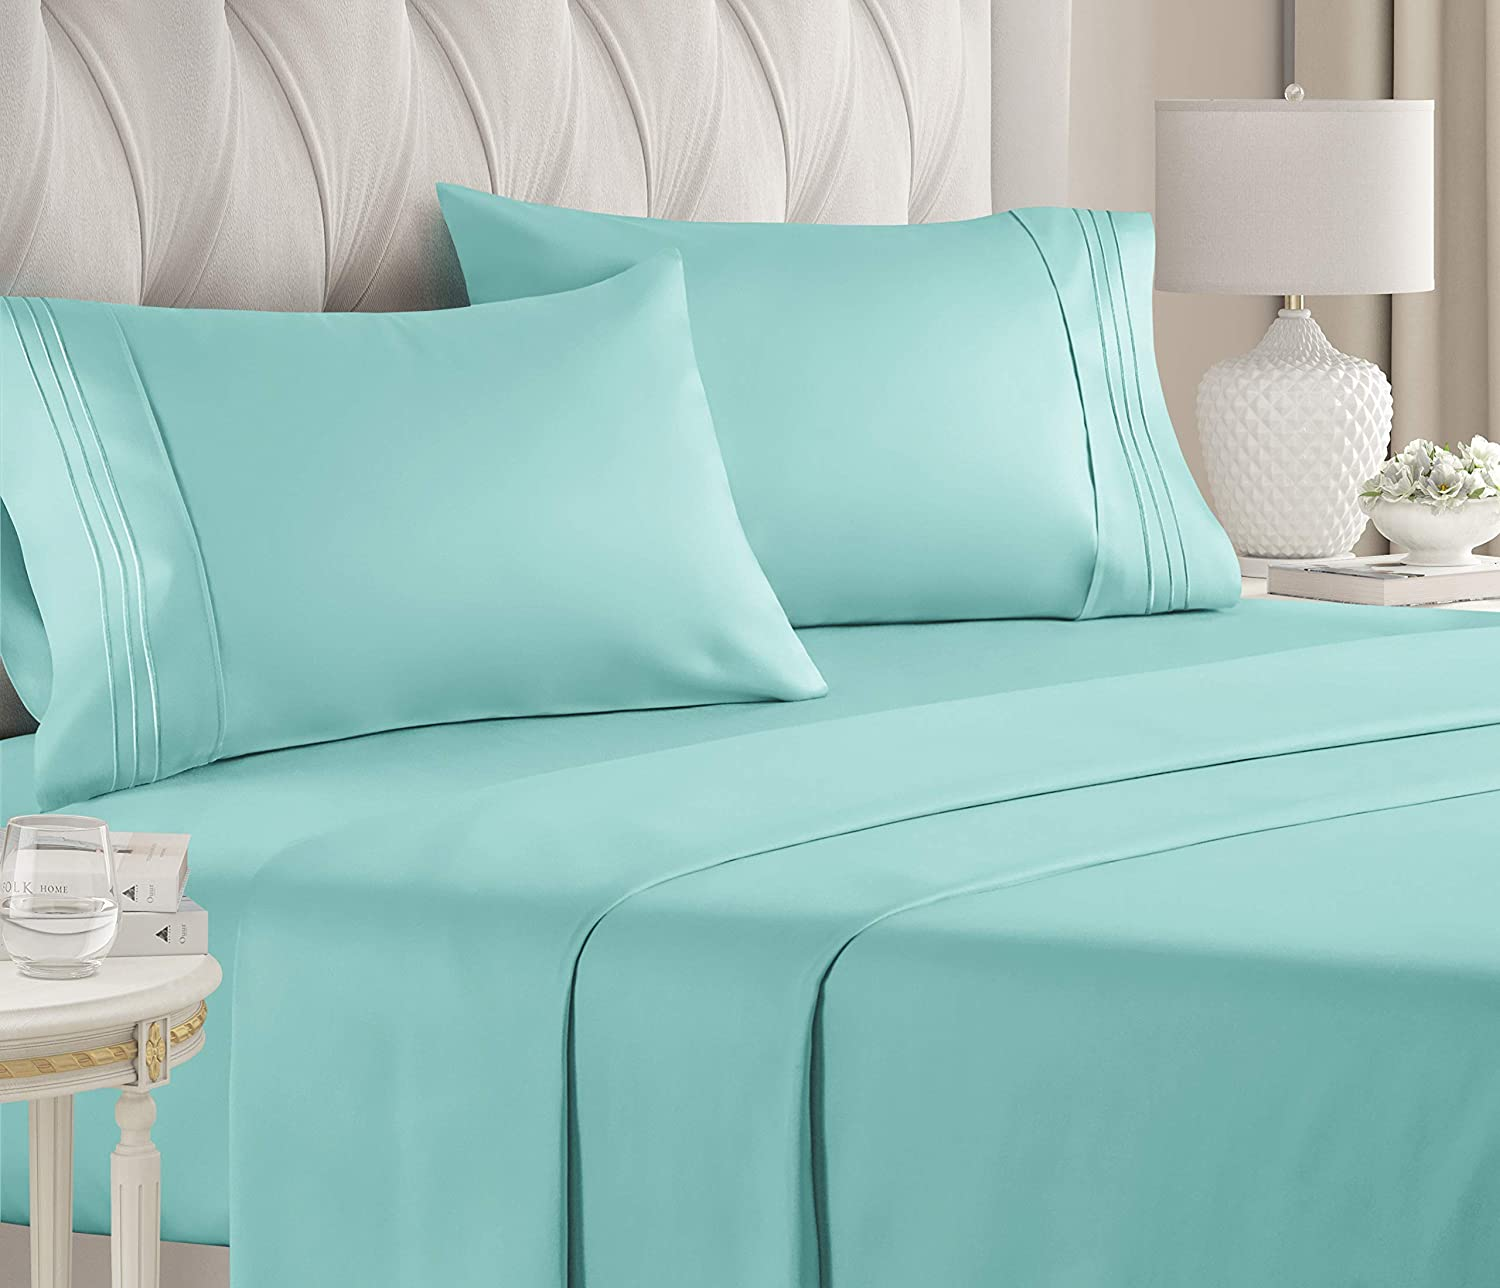 King Size Sheet Set - 4 Miami Mall Hotel Extra Bed Sheets Piece Luxury Challenge the lowest price of Japan